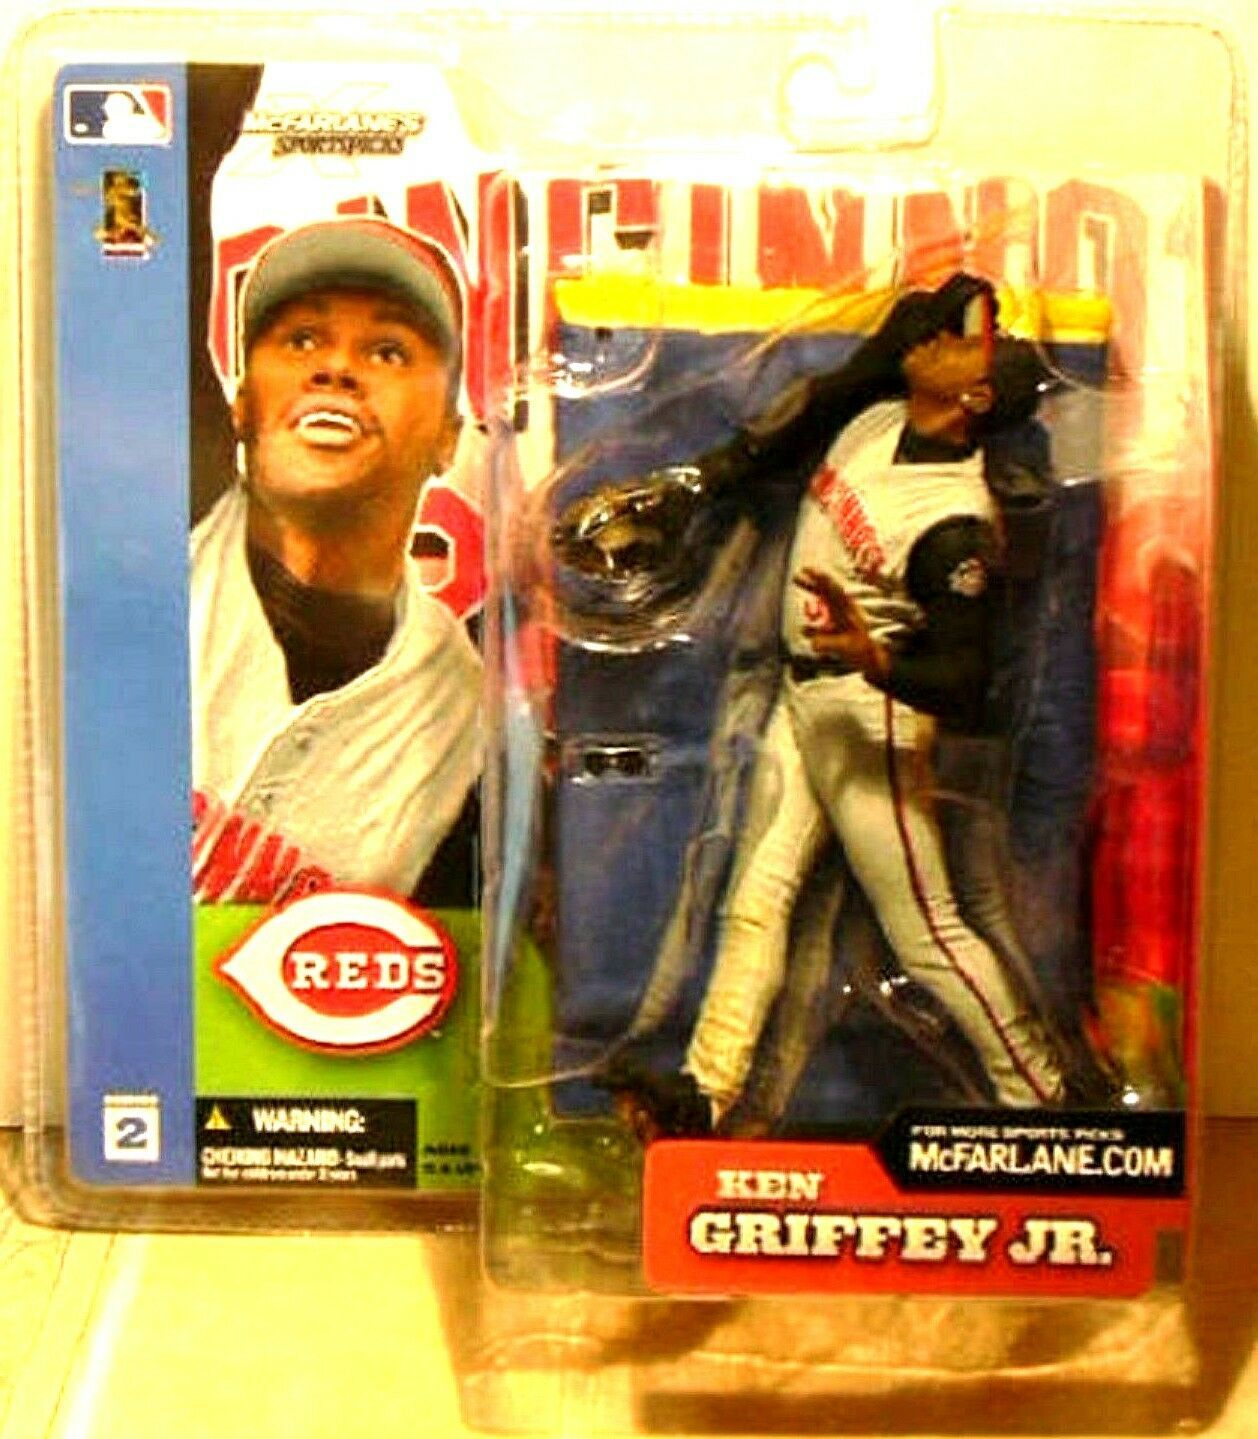 Ken Griffey Jr. Series 2 2002 McFarlane Cincinnati Reds Outfielder Figure-New!